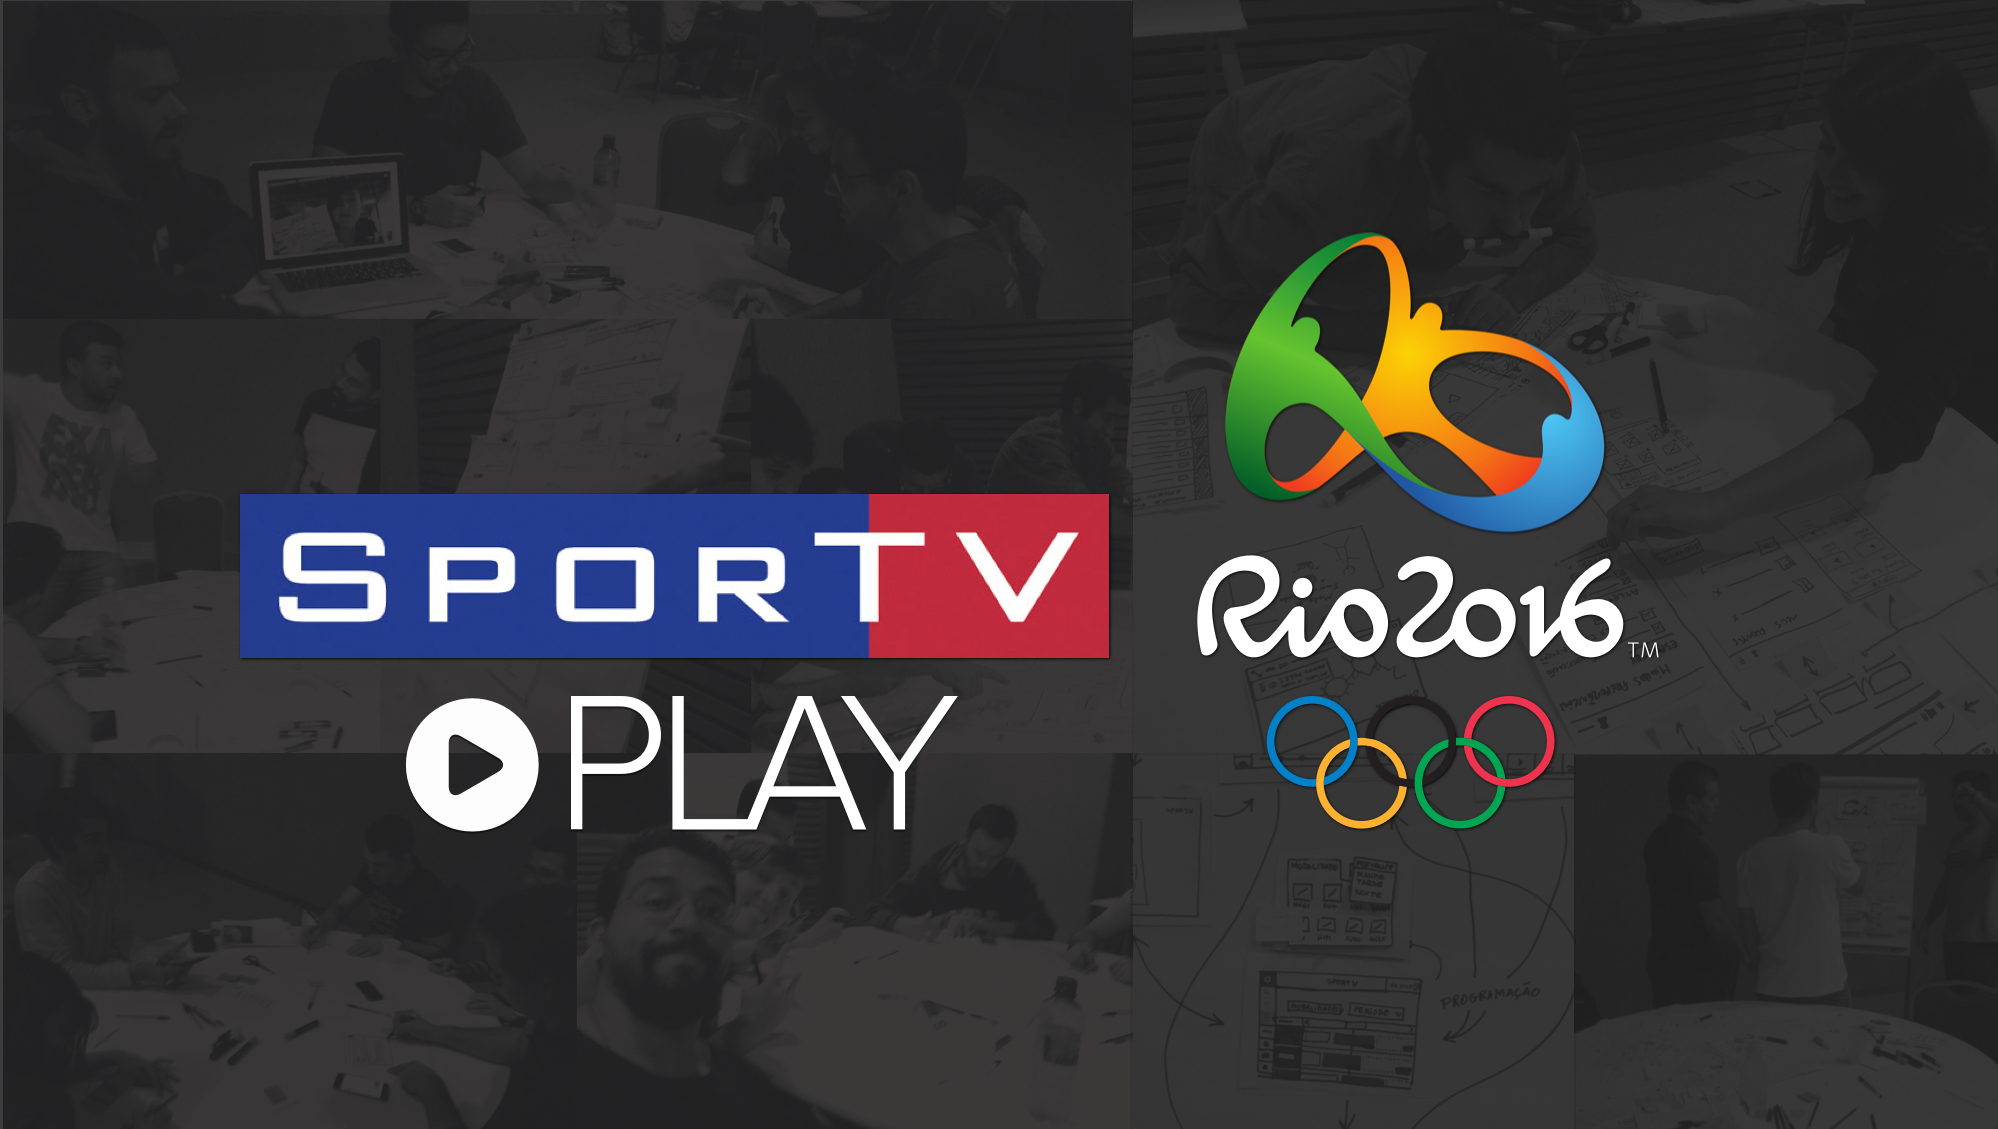 Protected: Sportv Play – Olympics Rio 2016